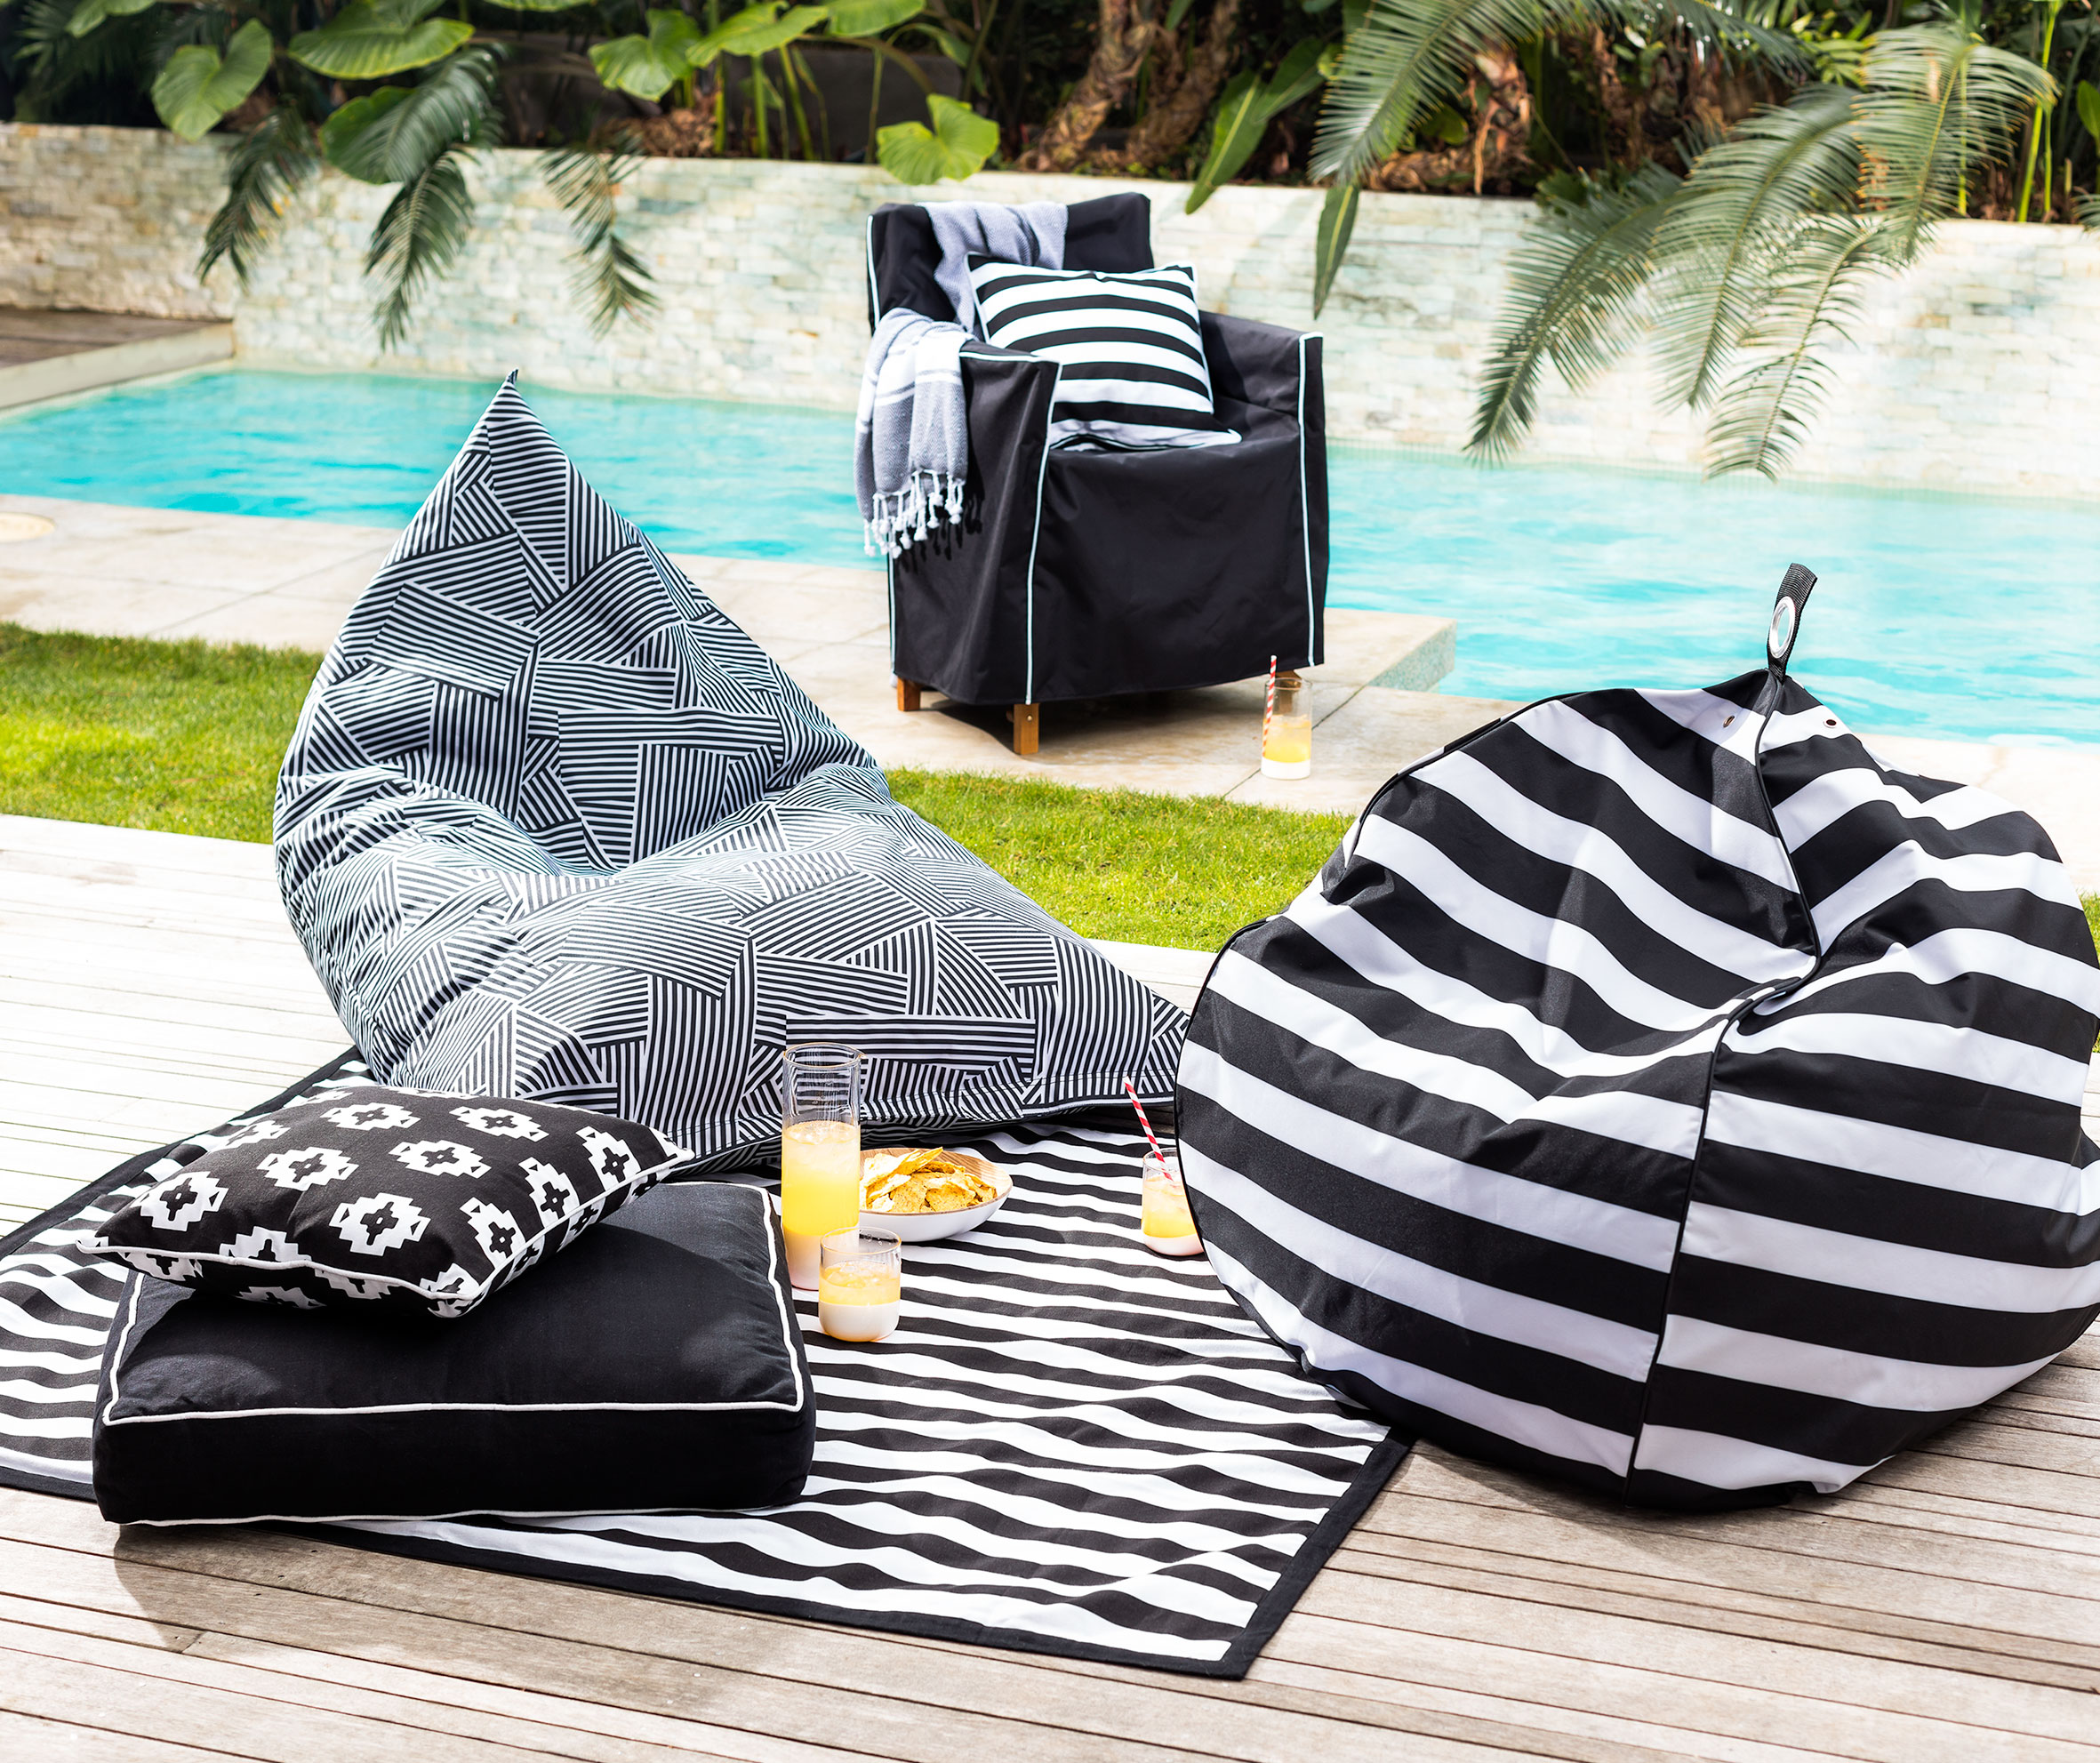 Chilled out Summer - get your garden ready this Spring with new Outdoor Decor